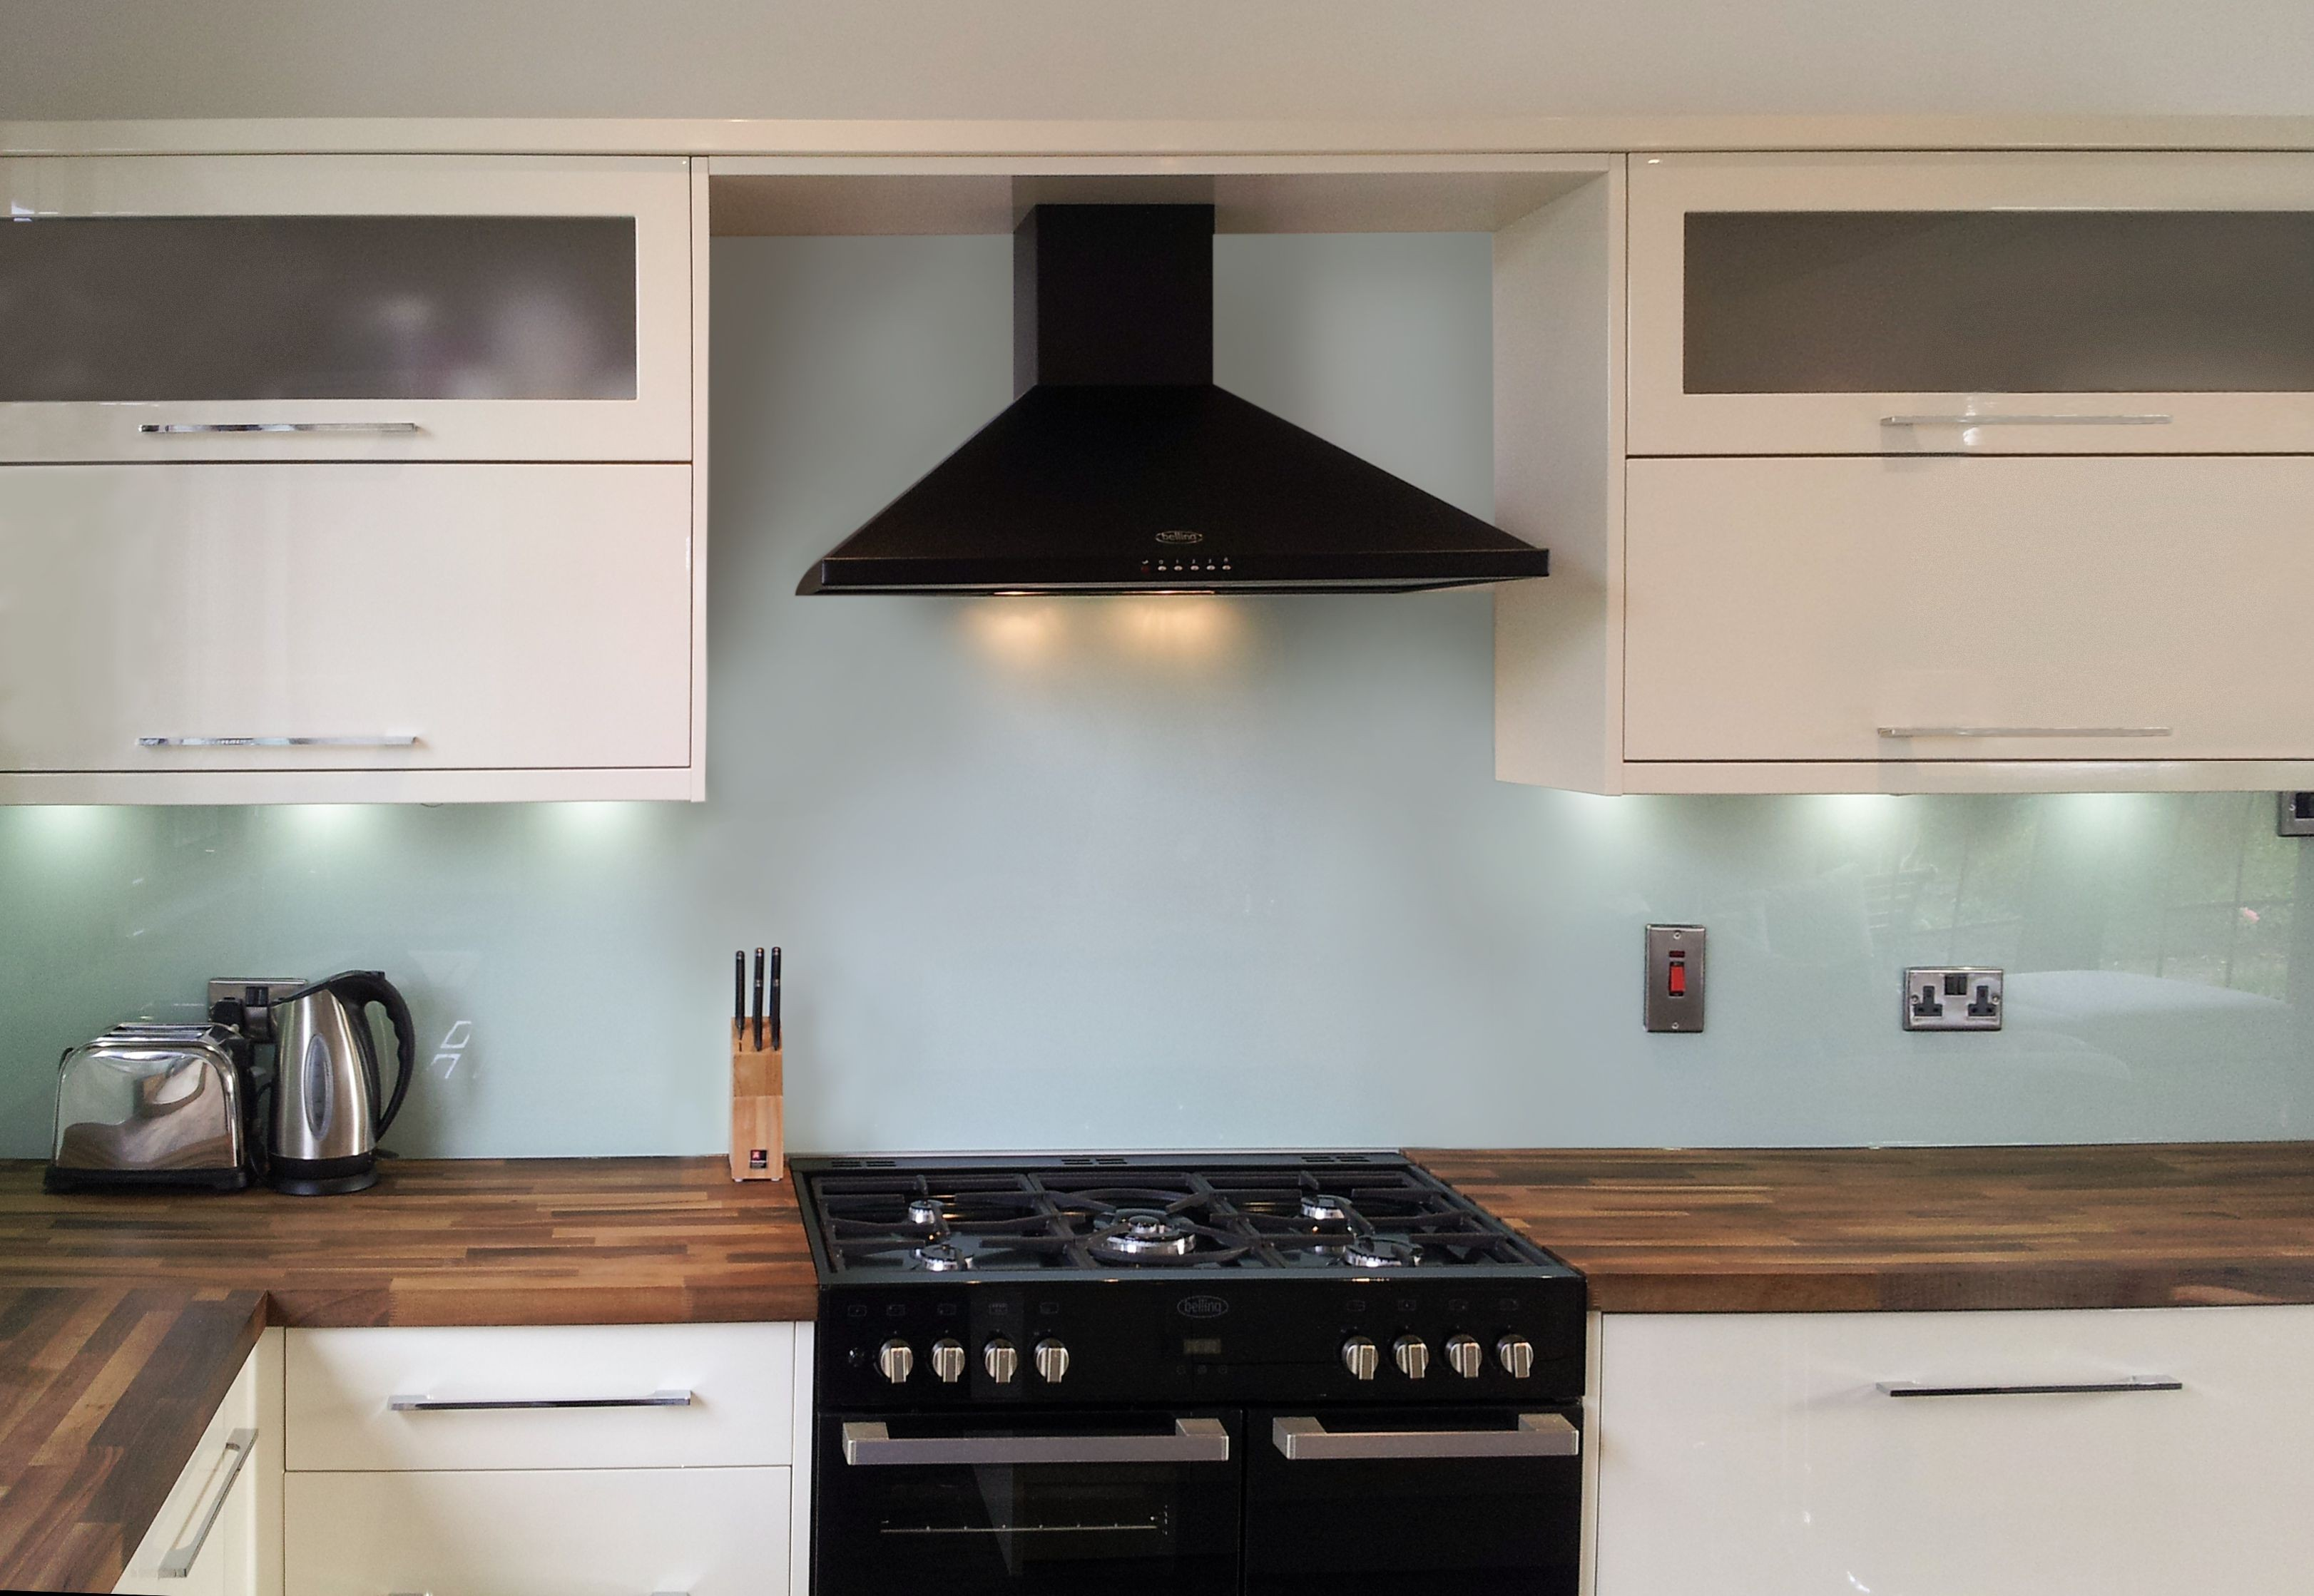 Glacier DIY Kitchen Natural glass splashback